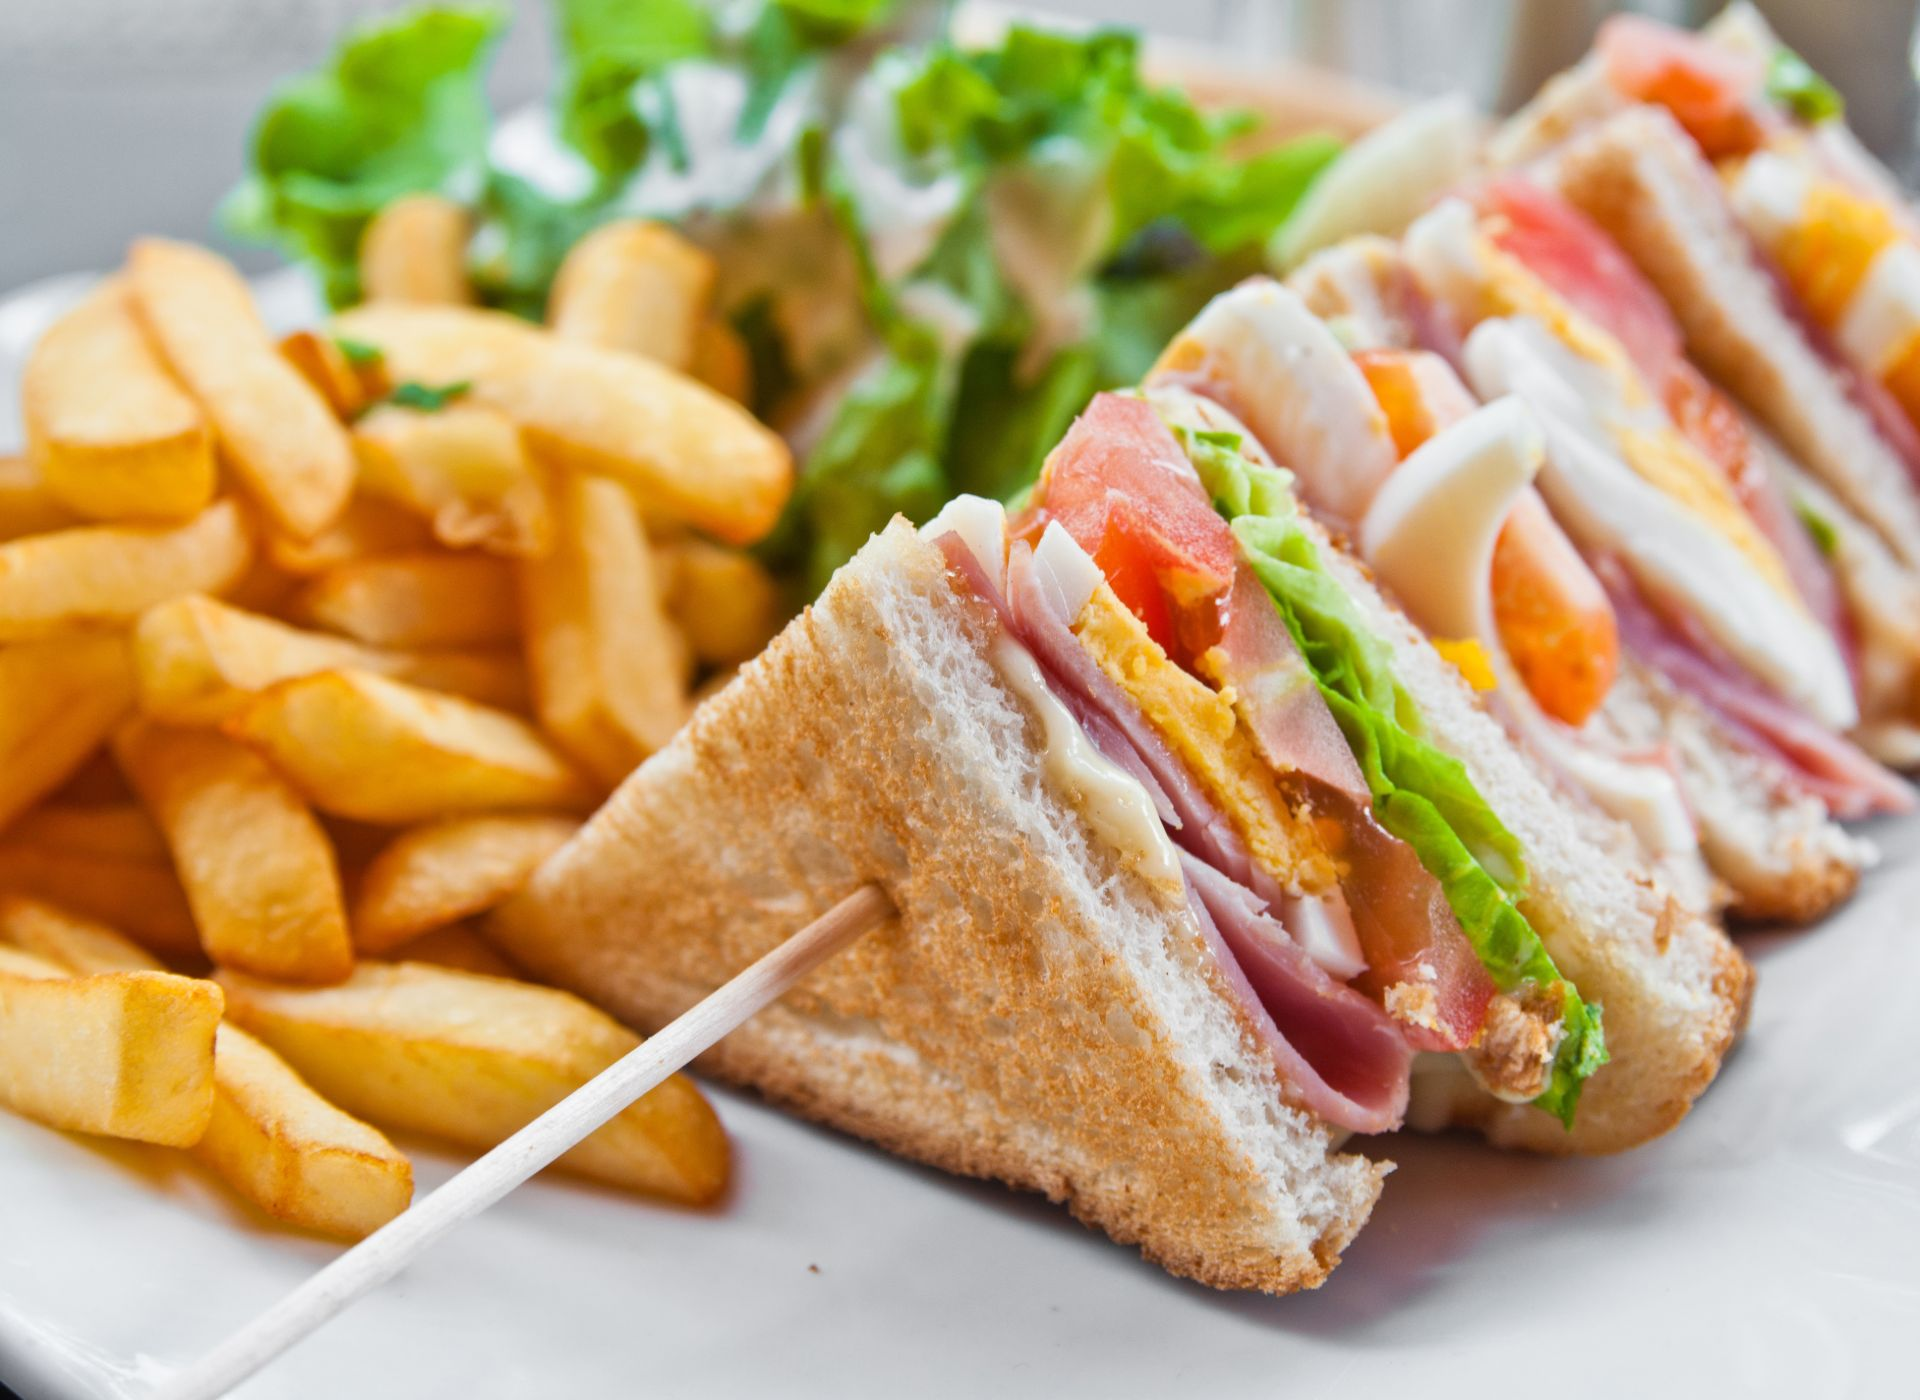 Triple decker club sandwich with ham, hard boiled egg, lettuce and tomato on a plate with French fries